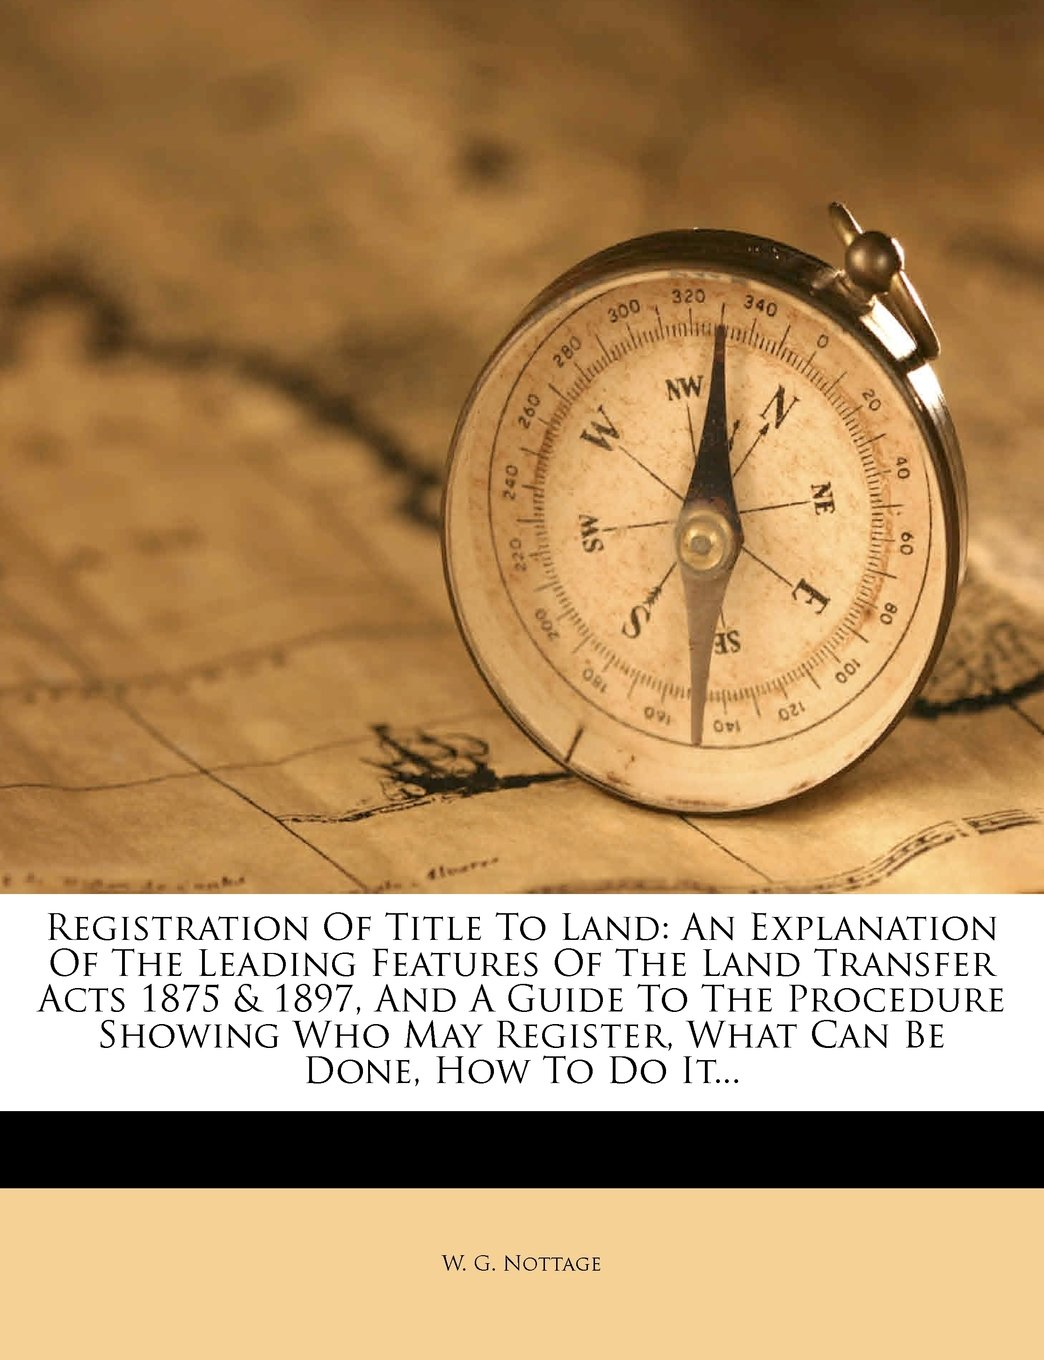 Registration Of Title To Land: An Explanation Of The Leading Features Of The Land Transfer Acts 1875 & 1897, And A Guide To The Procedure Showing Who May Register, What Can Be Done, How To Do It... PDF